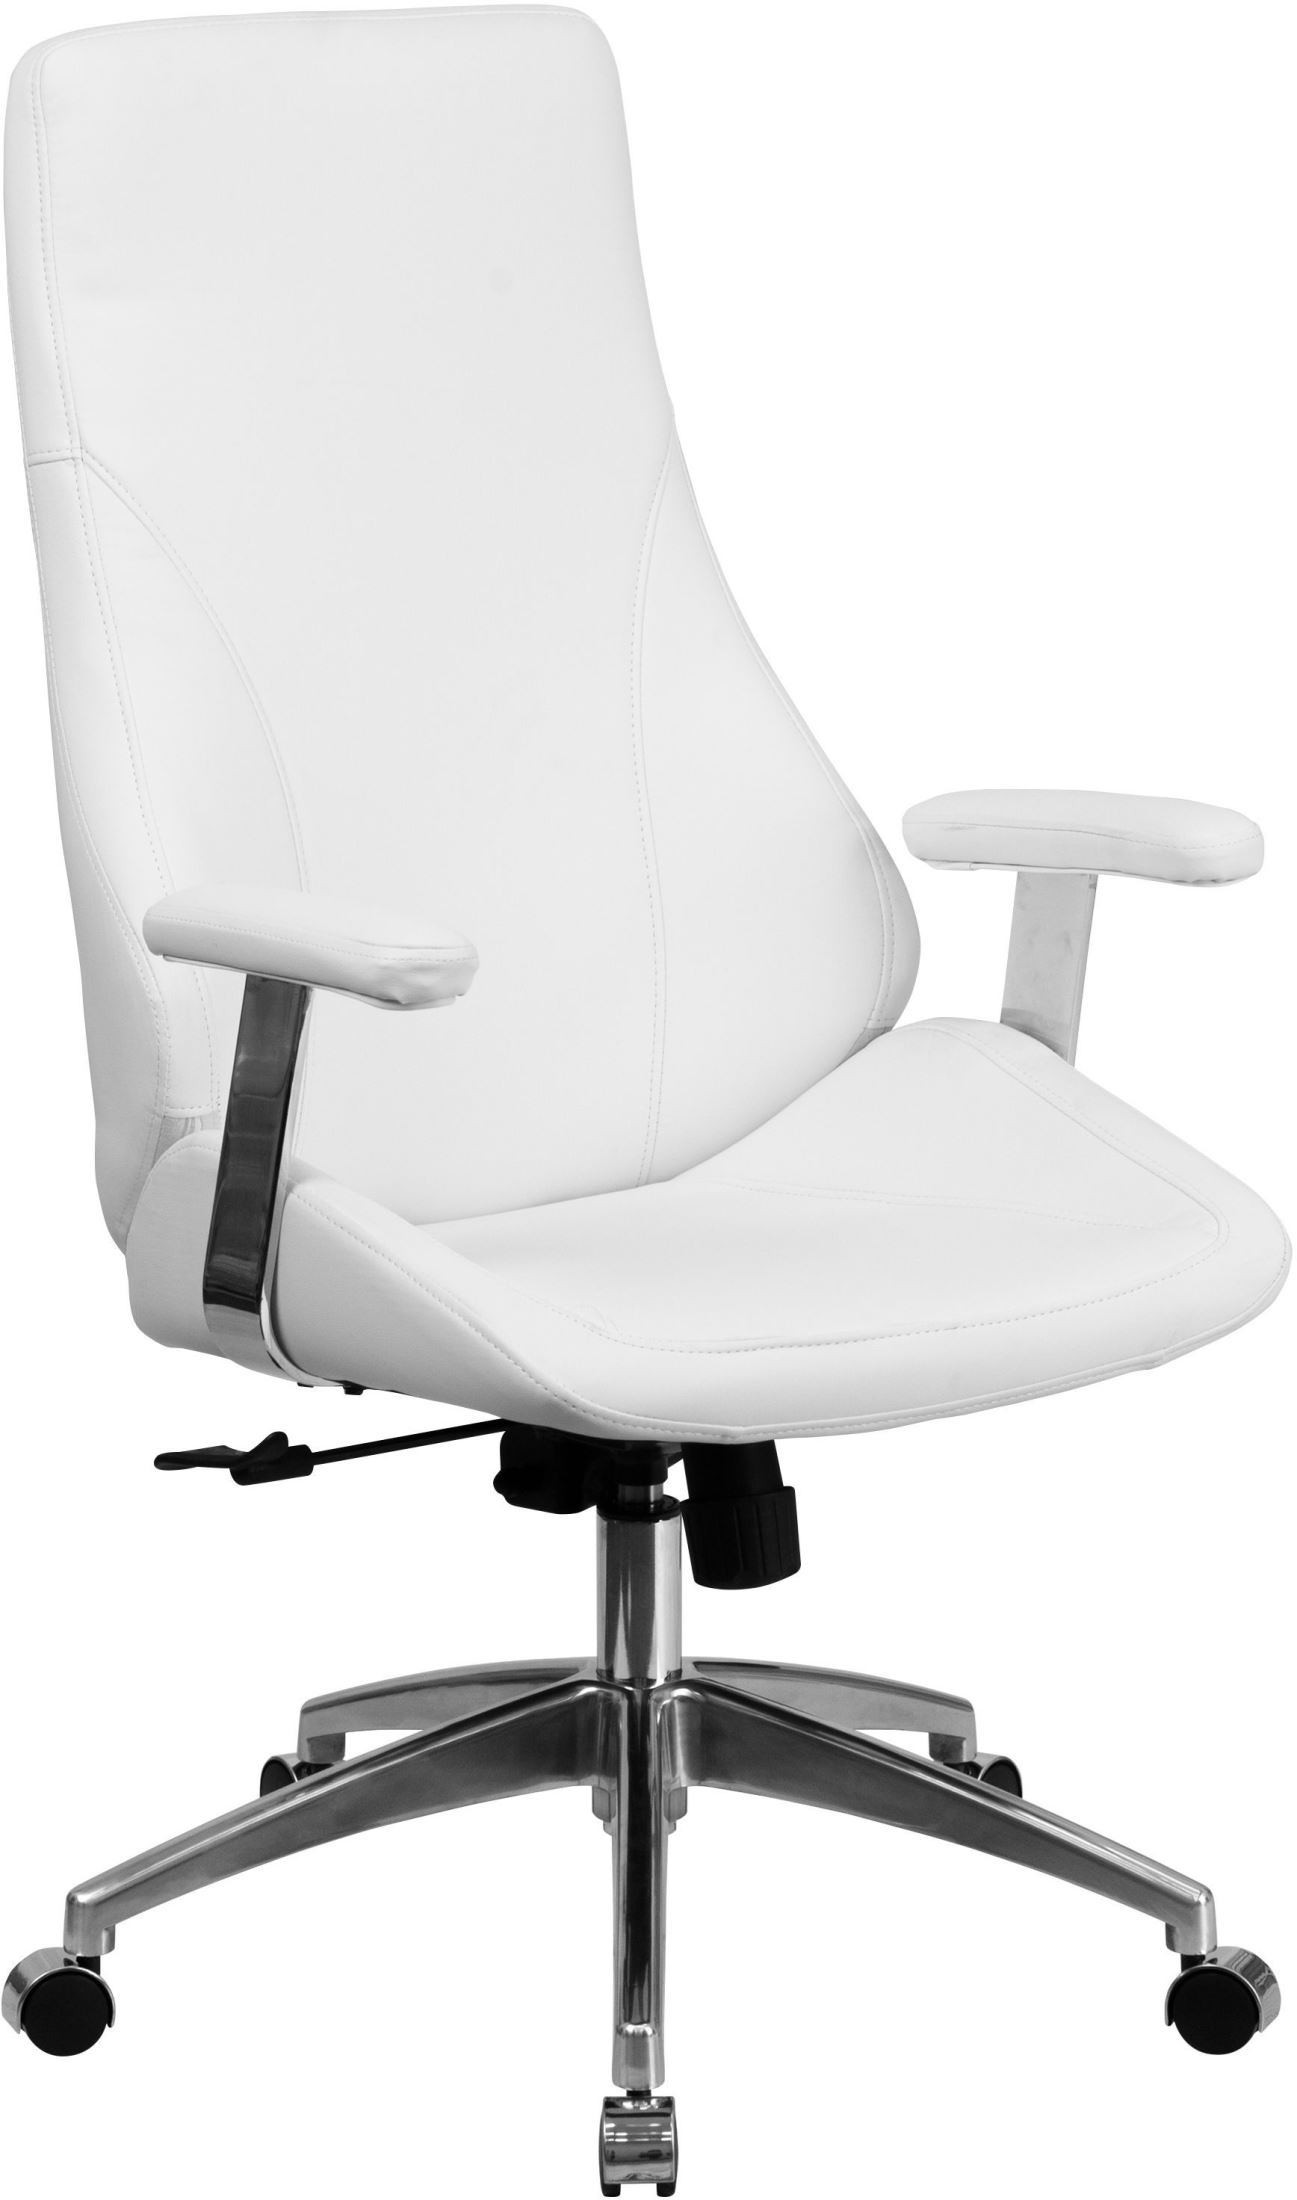 White Swivel Desk Chair High Back White Bonded Leather Executive Swivel Office